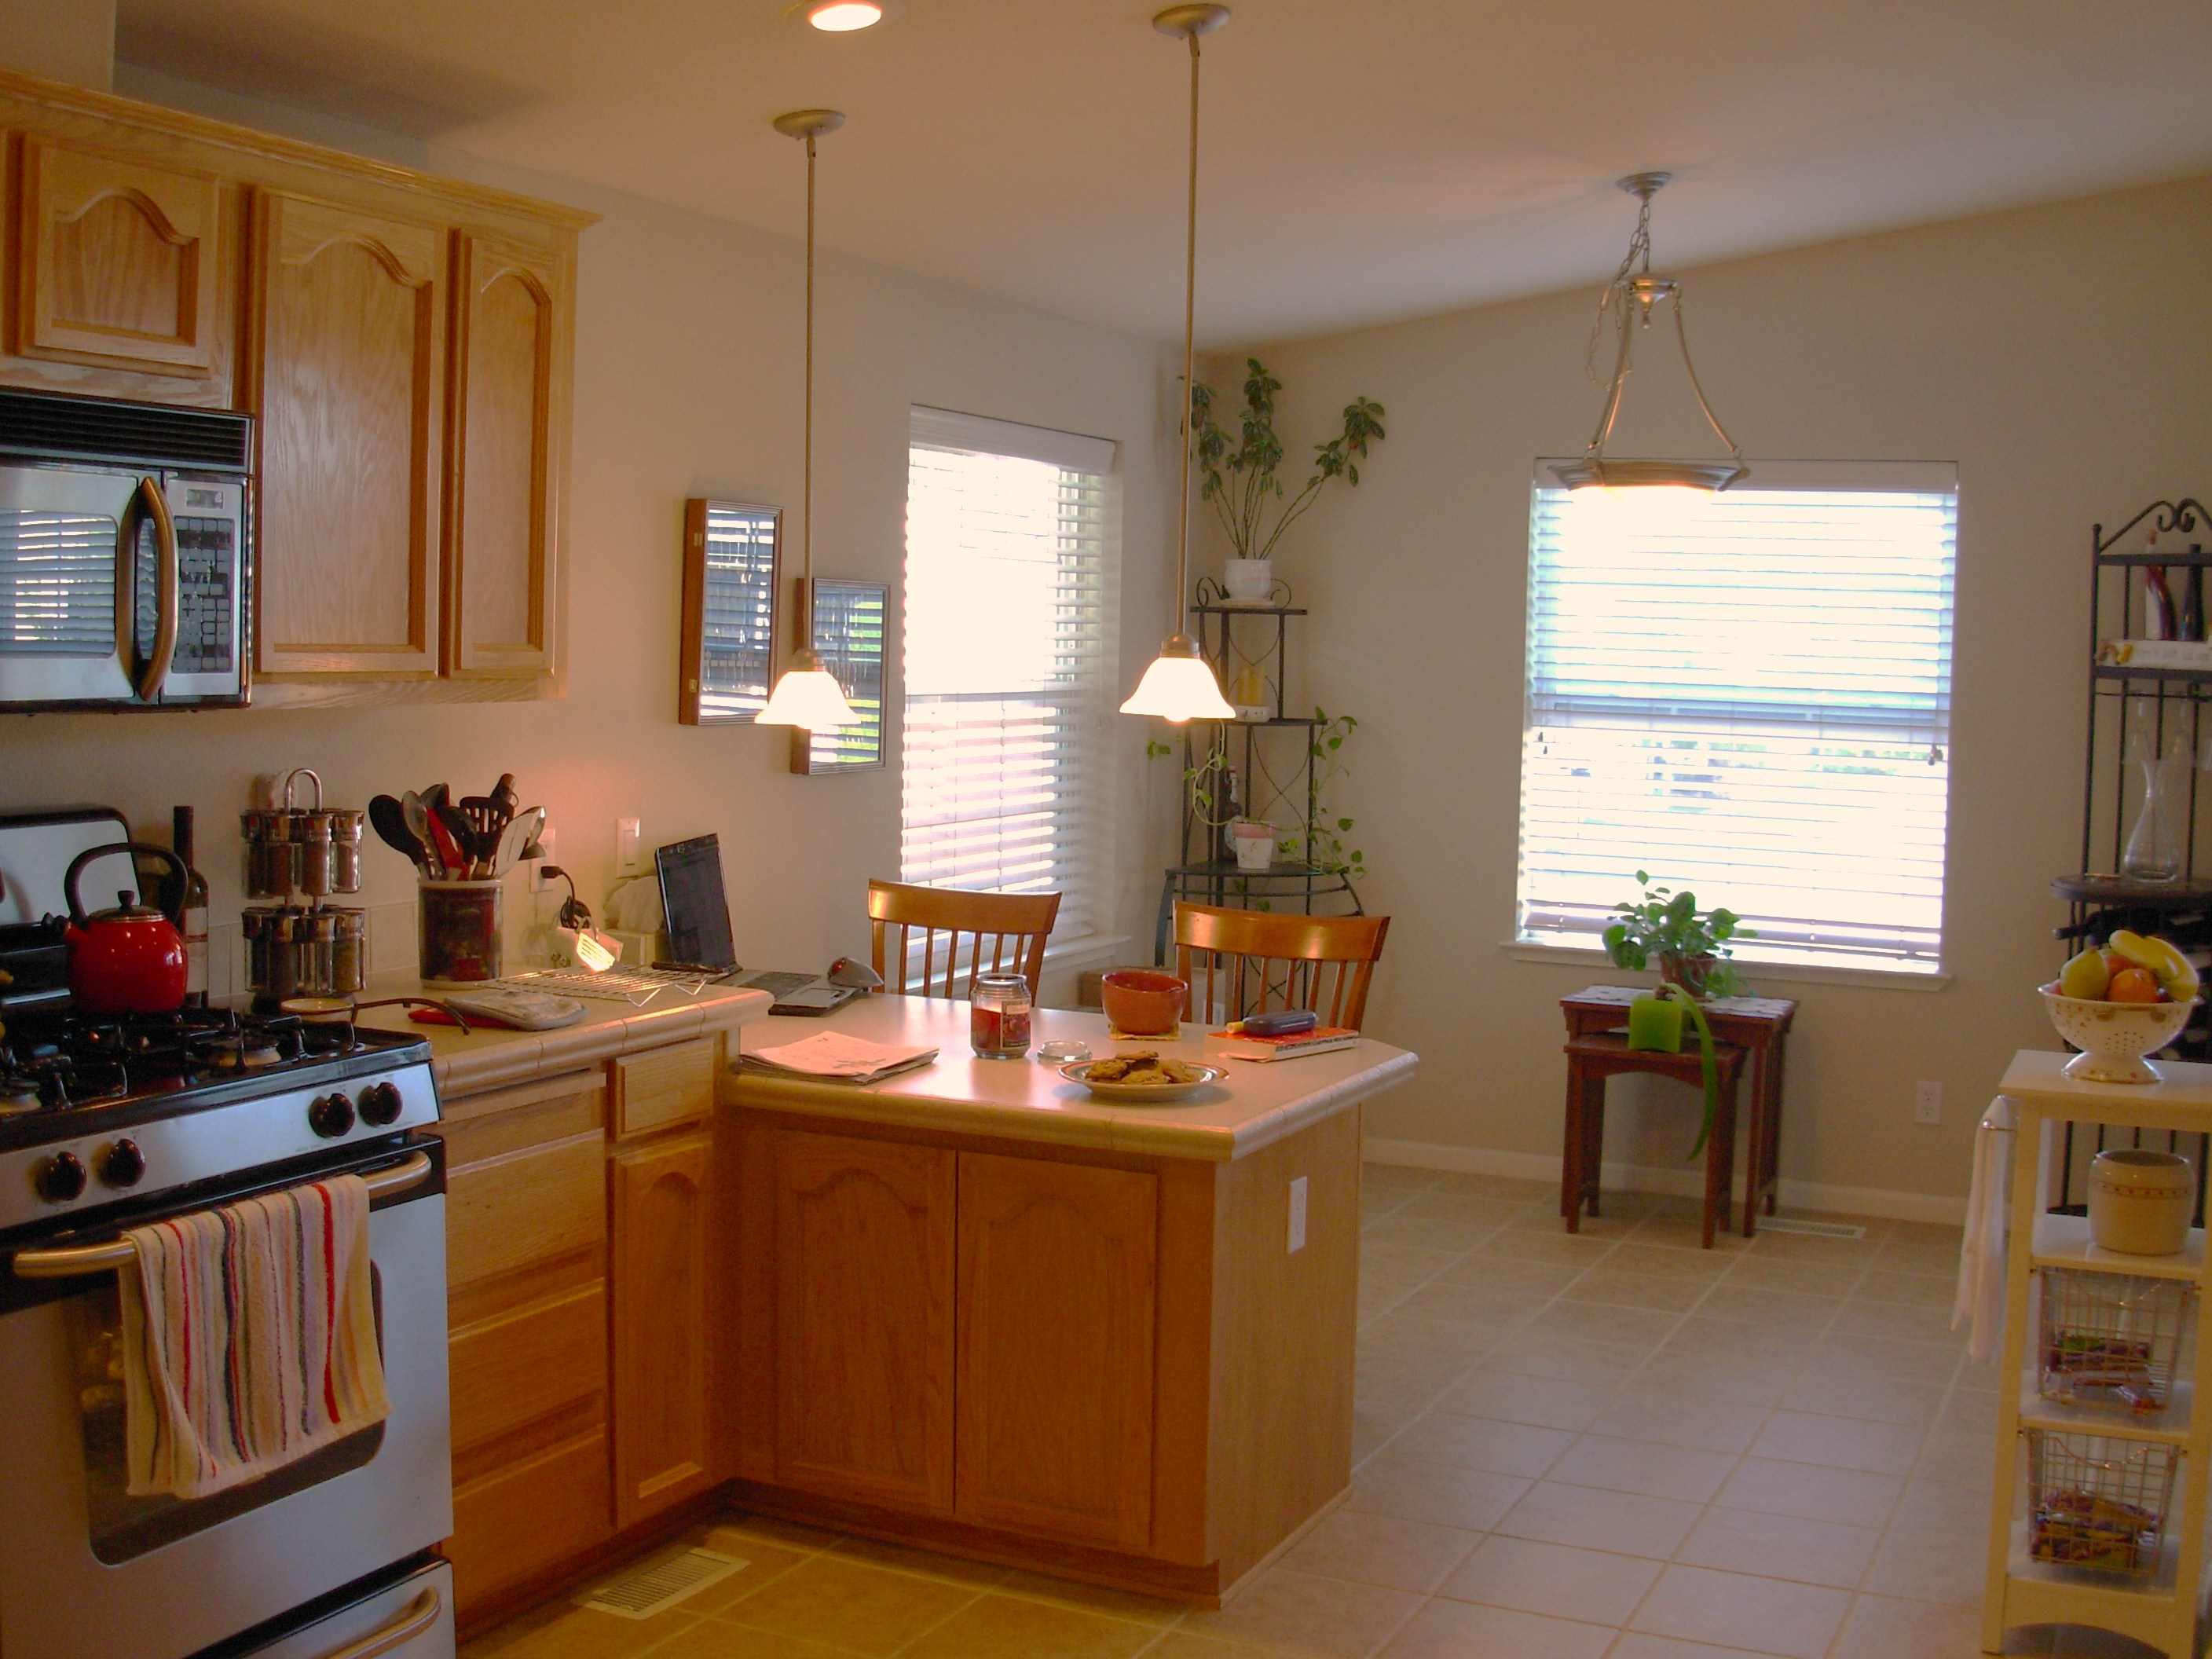 Breakfast nook with storage build a corner booth seating interior photos of kitchens and - Kitchen nooks with storage ...